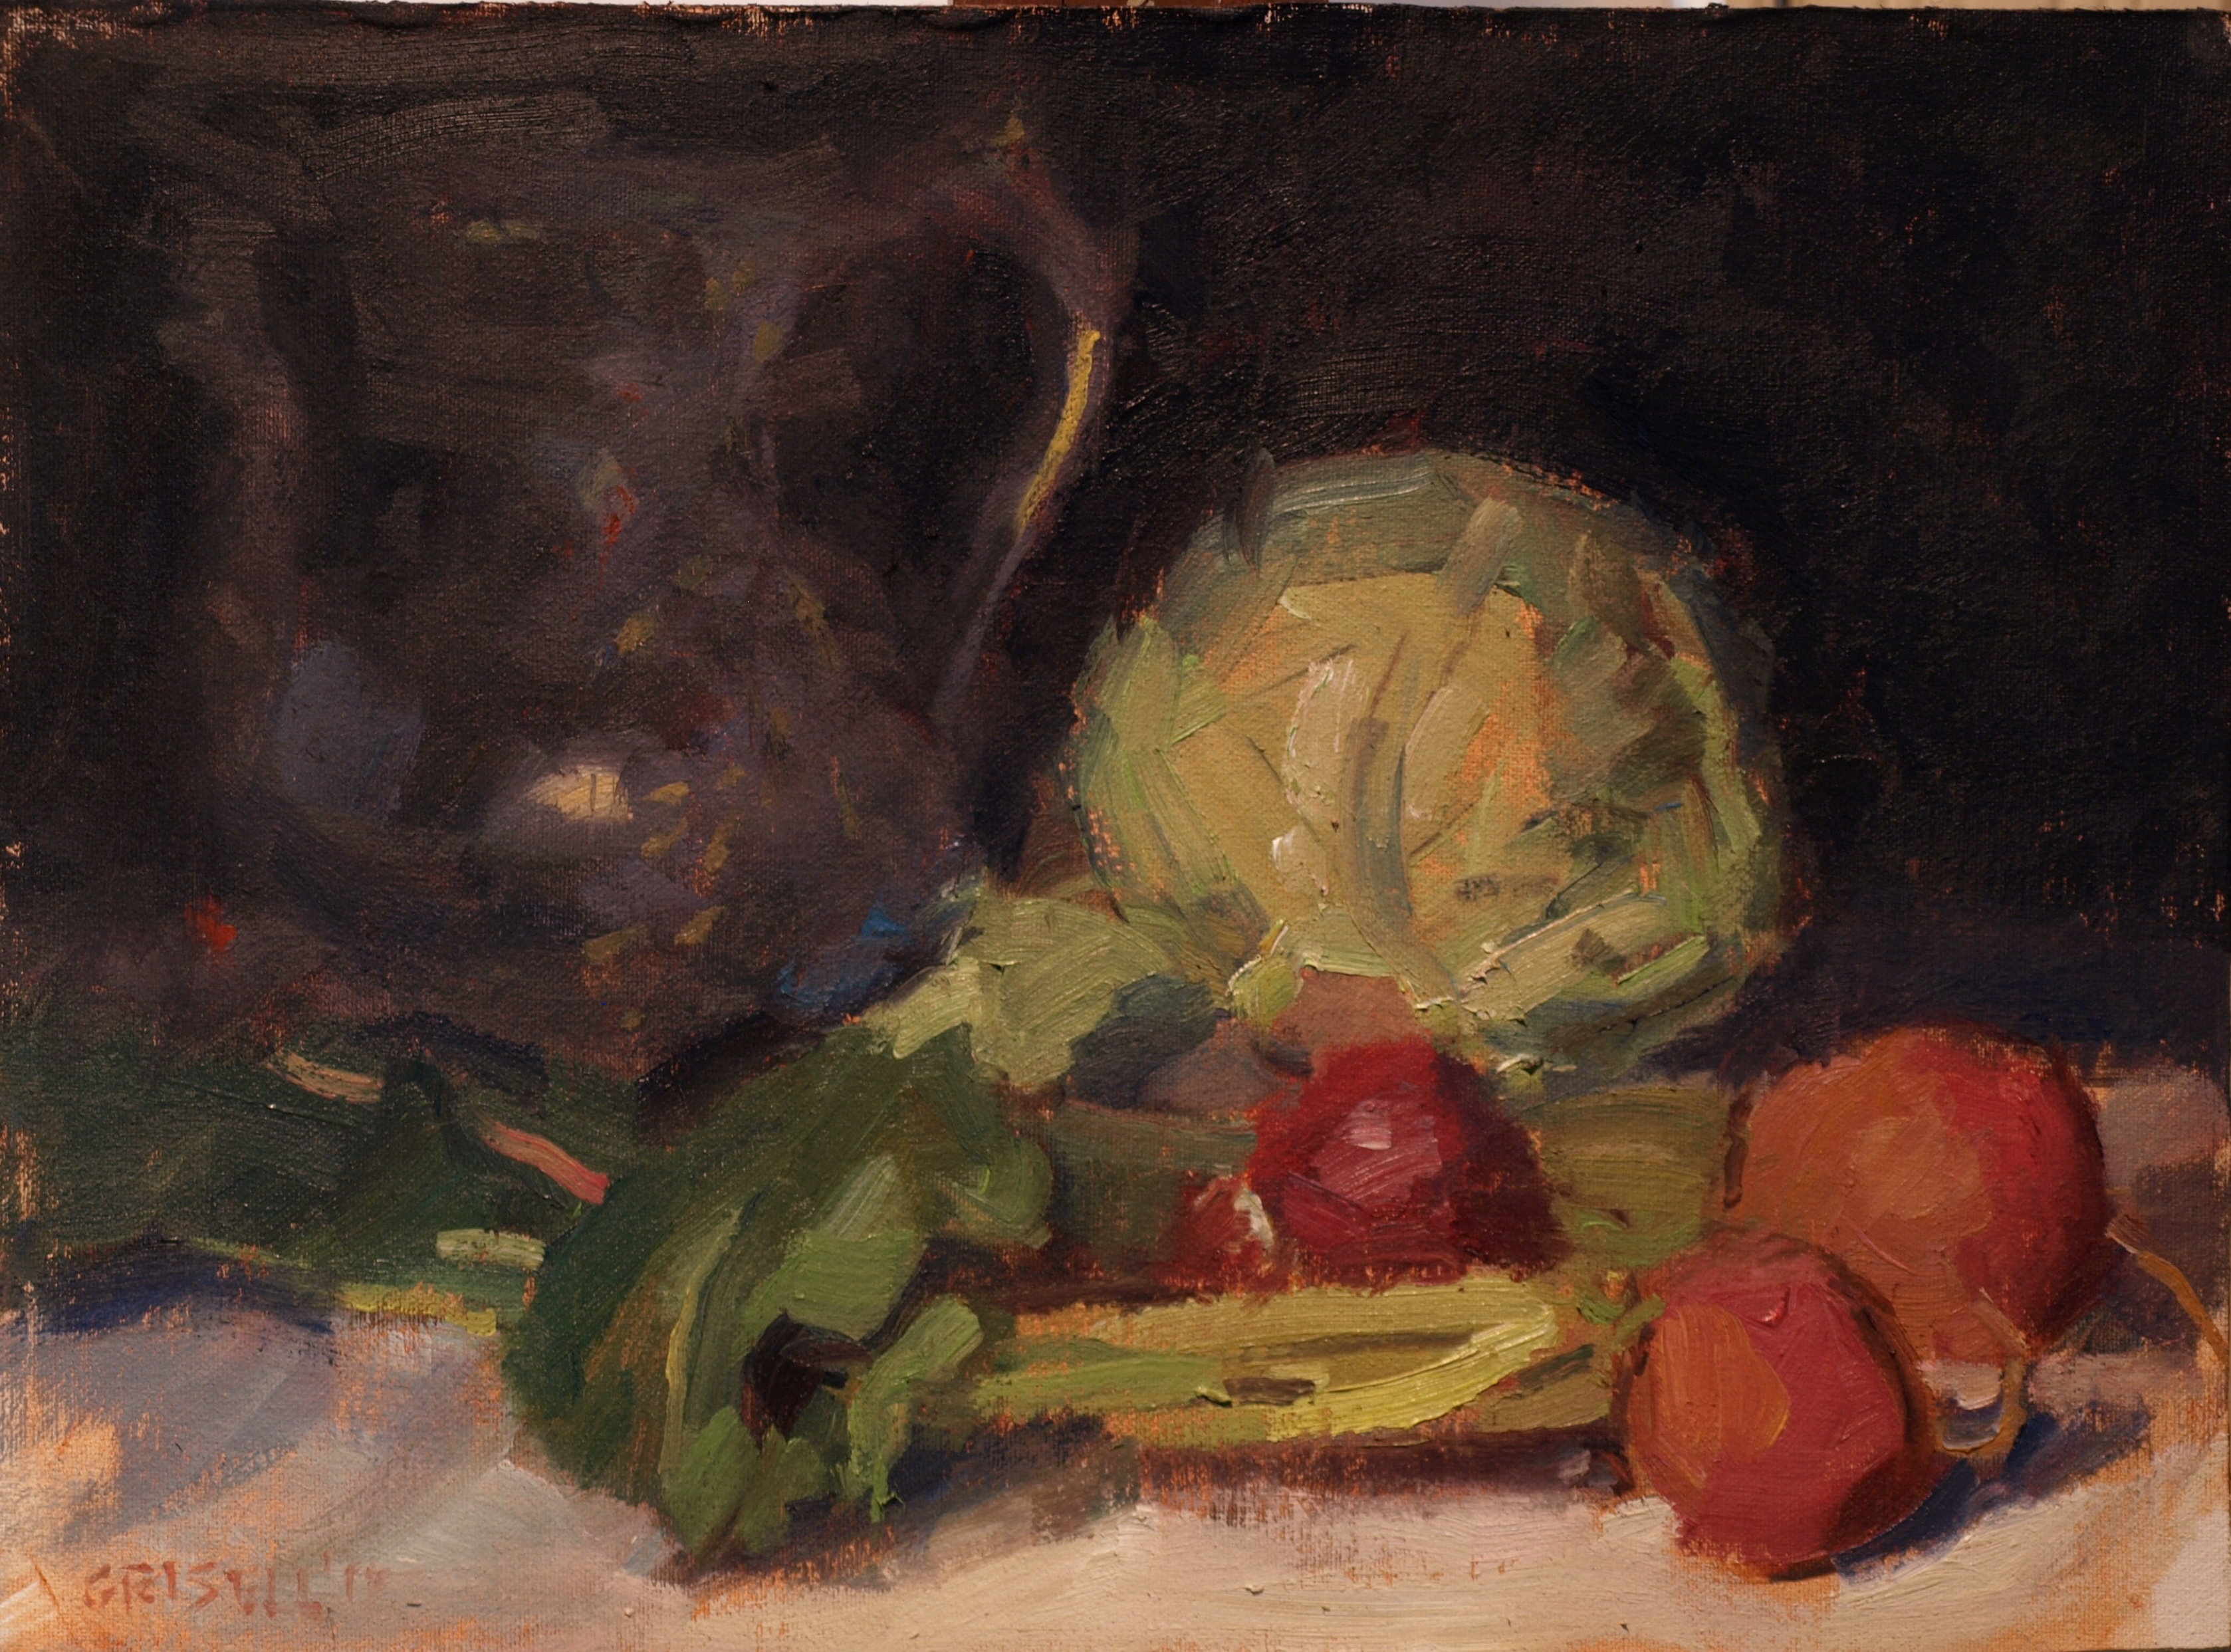 Cabbage and Beets, Oil on Canvas on Panel, 12 x 16 Inches, by Susan Grisell, $300